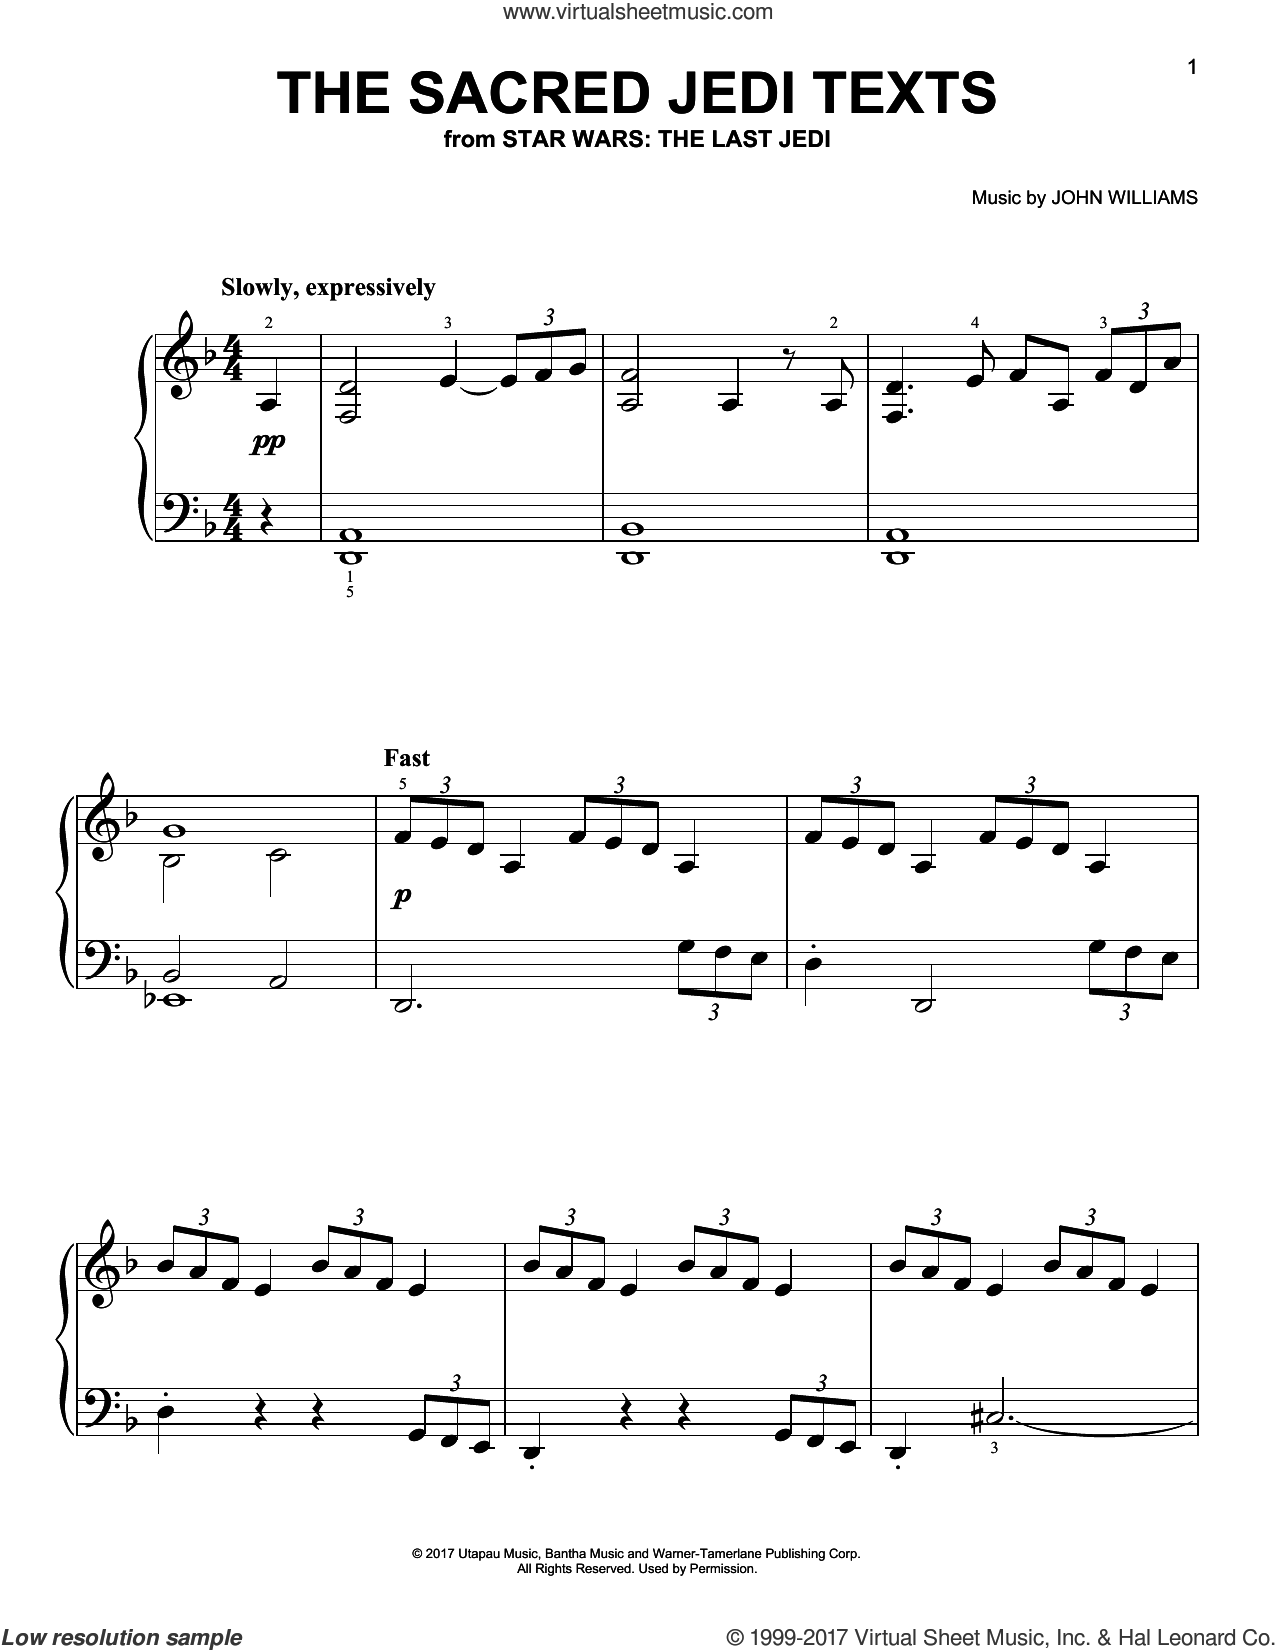 The Sacred Jedi Texts sheet music for piano solo by John Williams, easy skill level